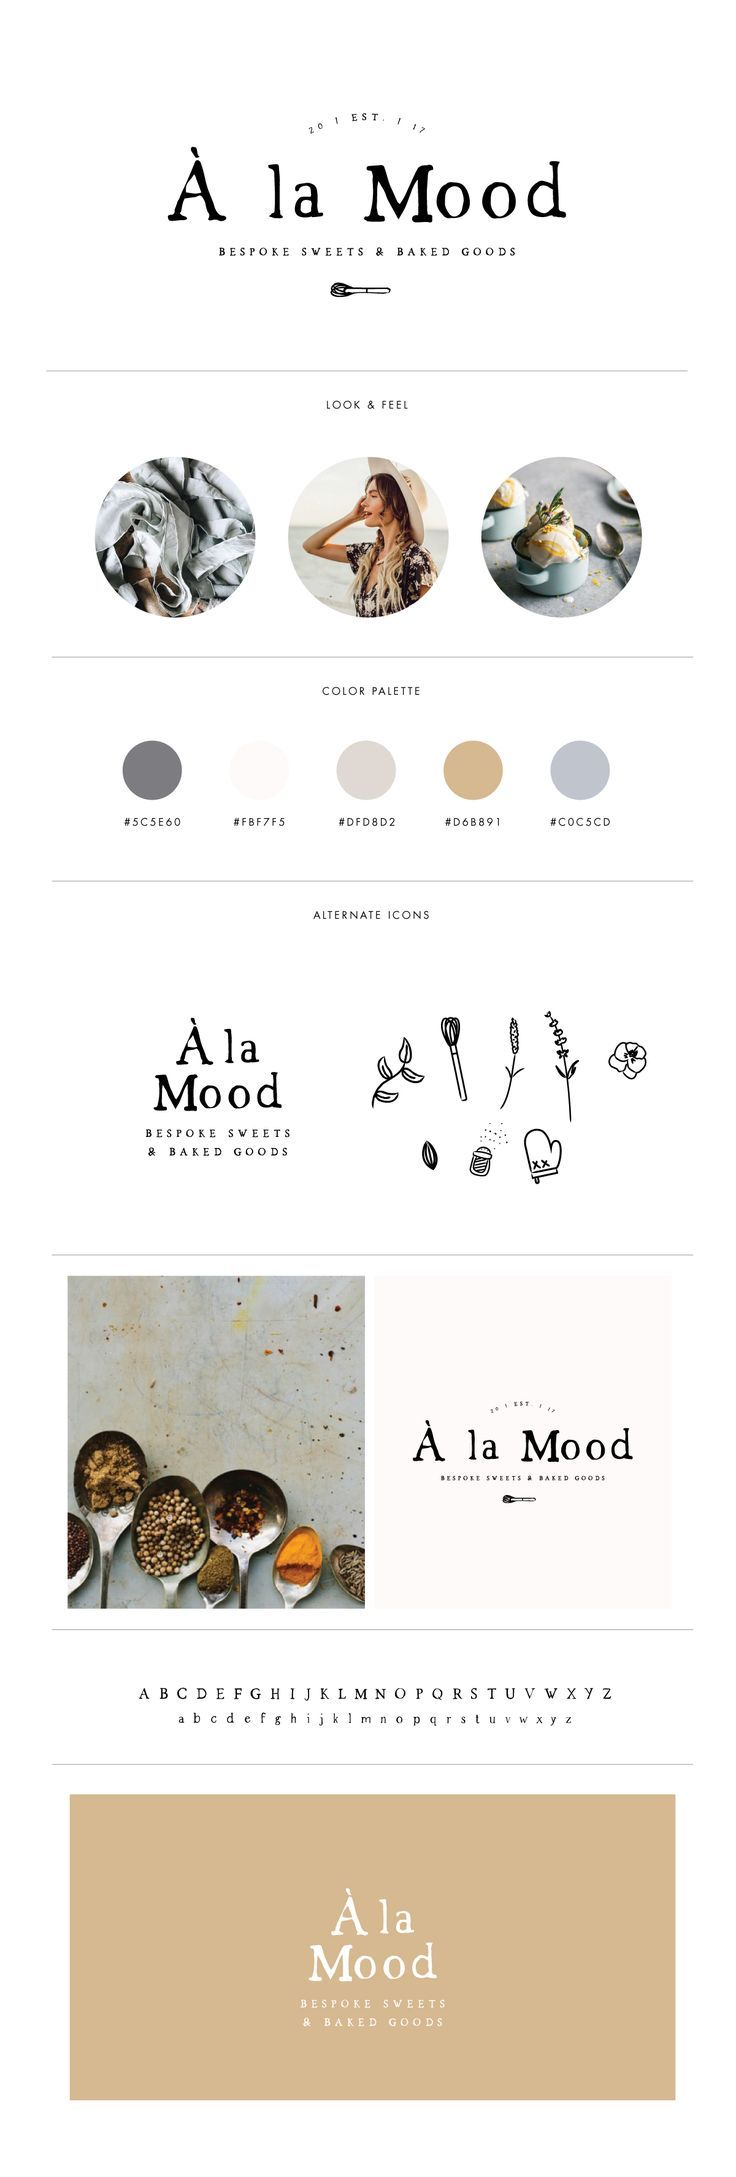 Earthy, anthro-inspired brand & logo for baker A La Mood by designers Davey & Krista